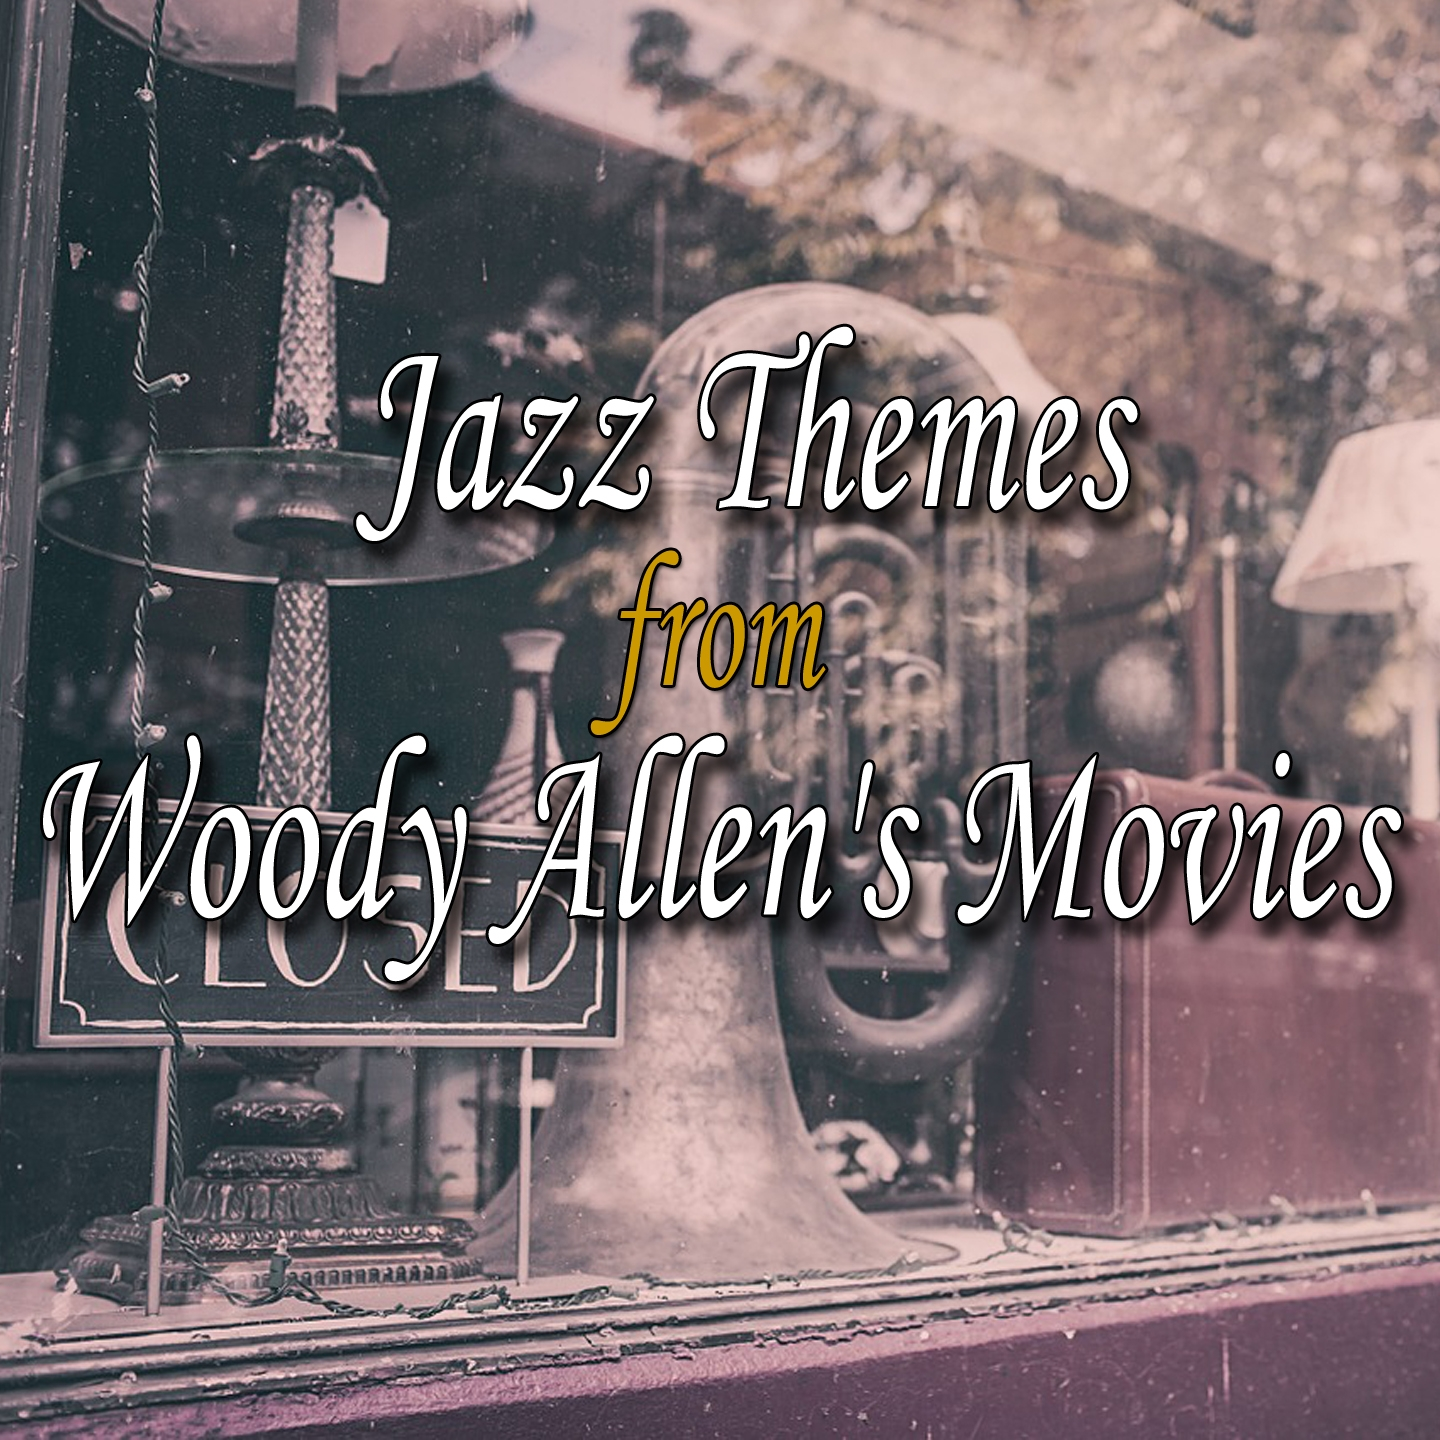 Jazz Themes from Woody Allen's Movies